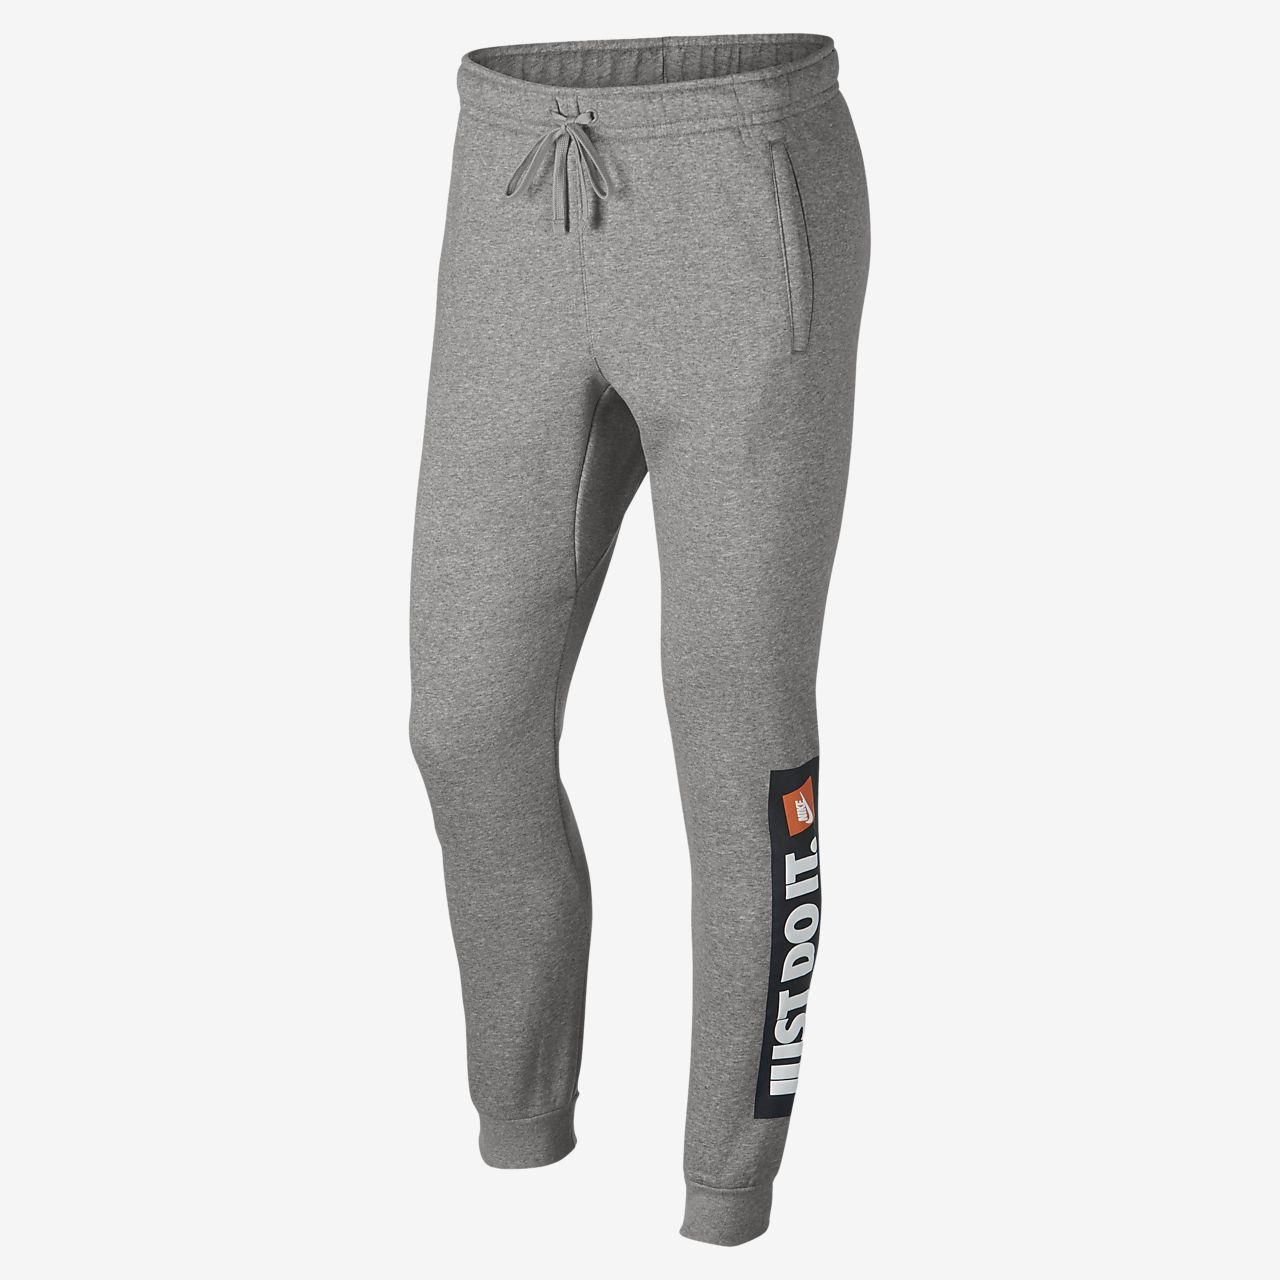 Nike Sportswear Men's Fleece Joggers